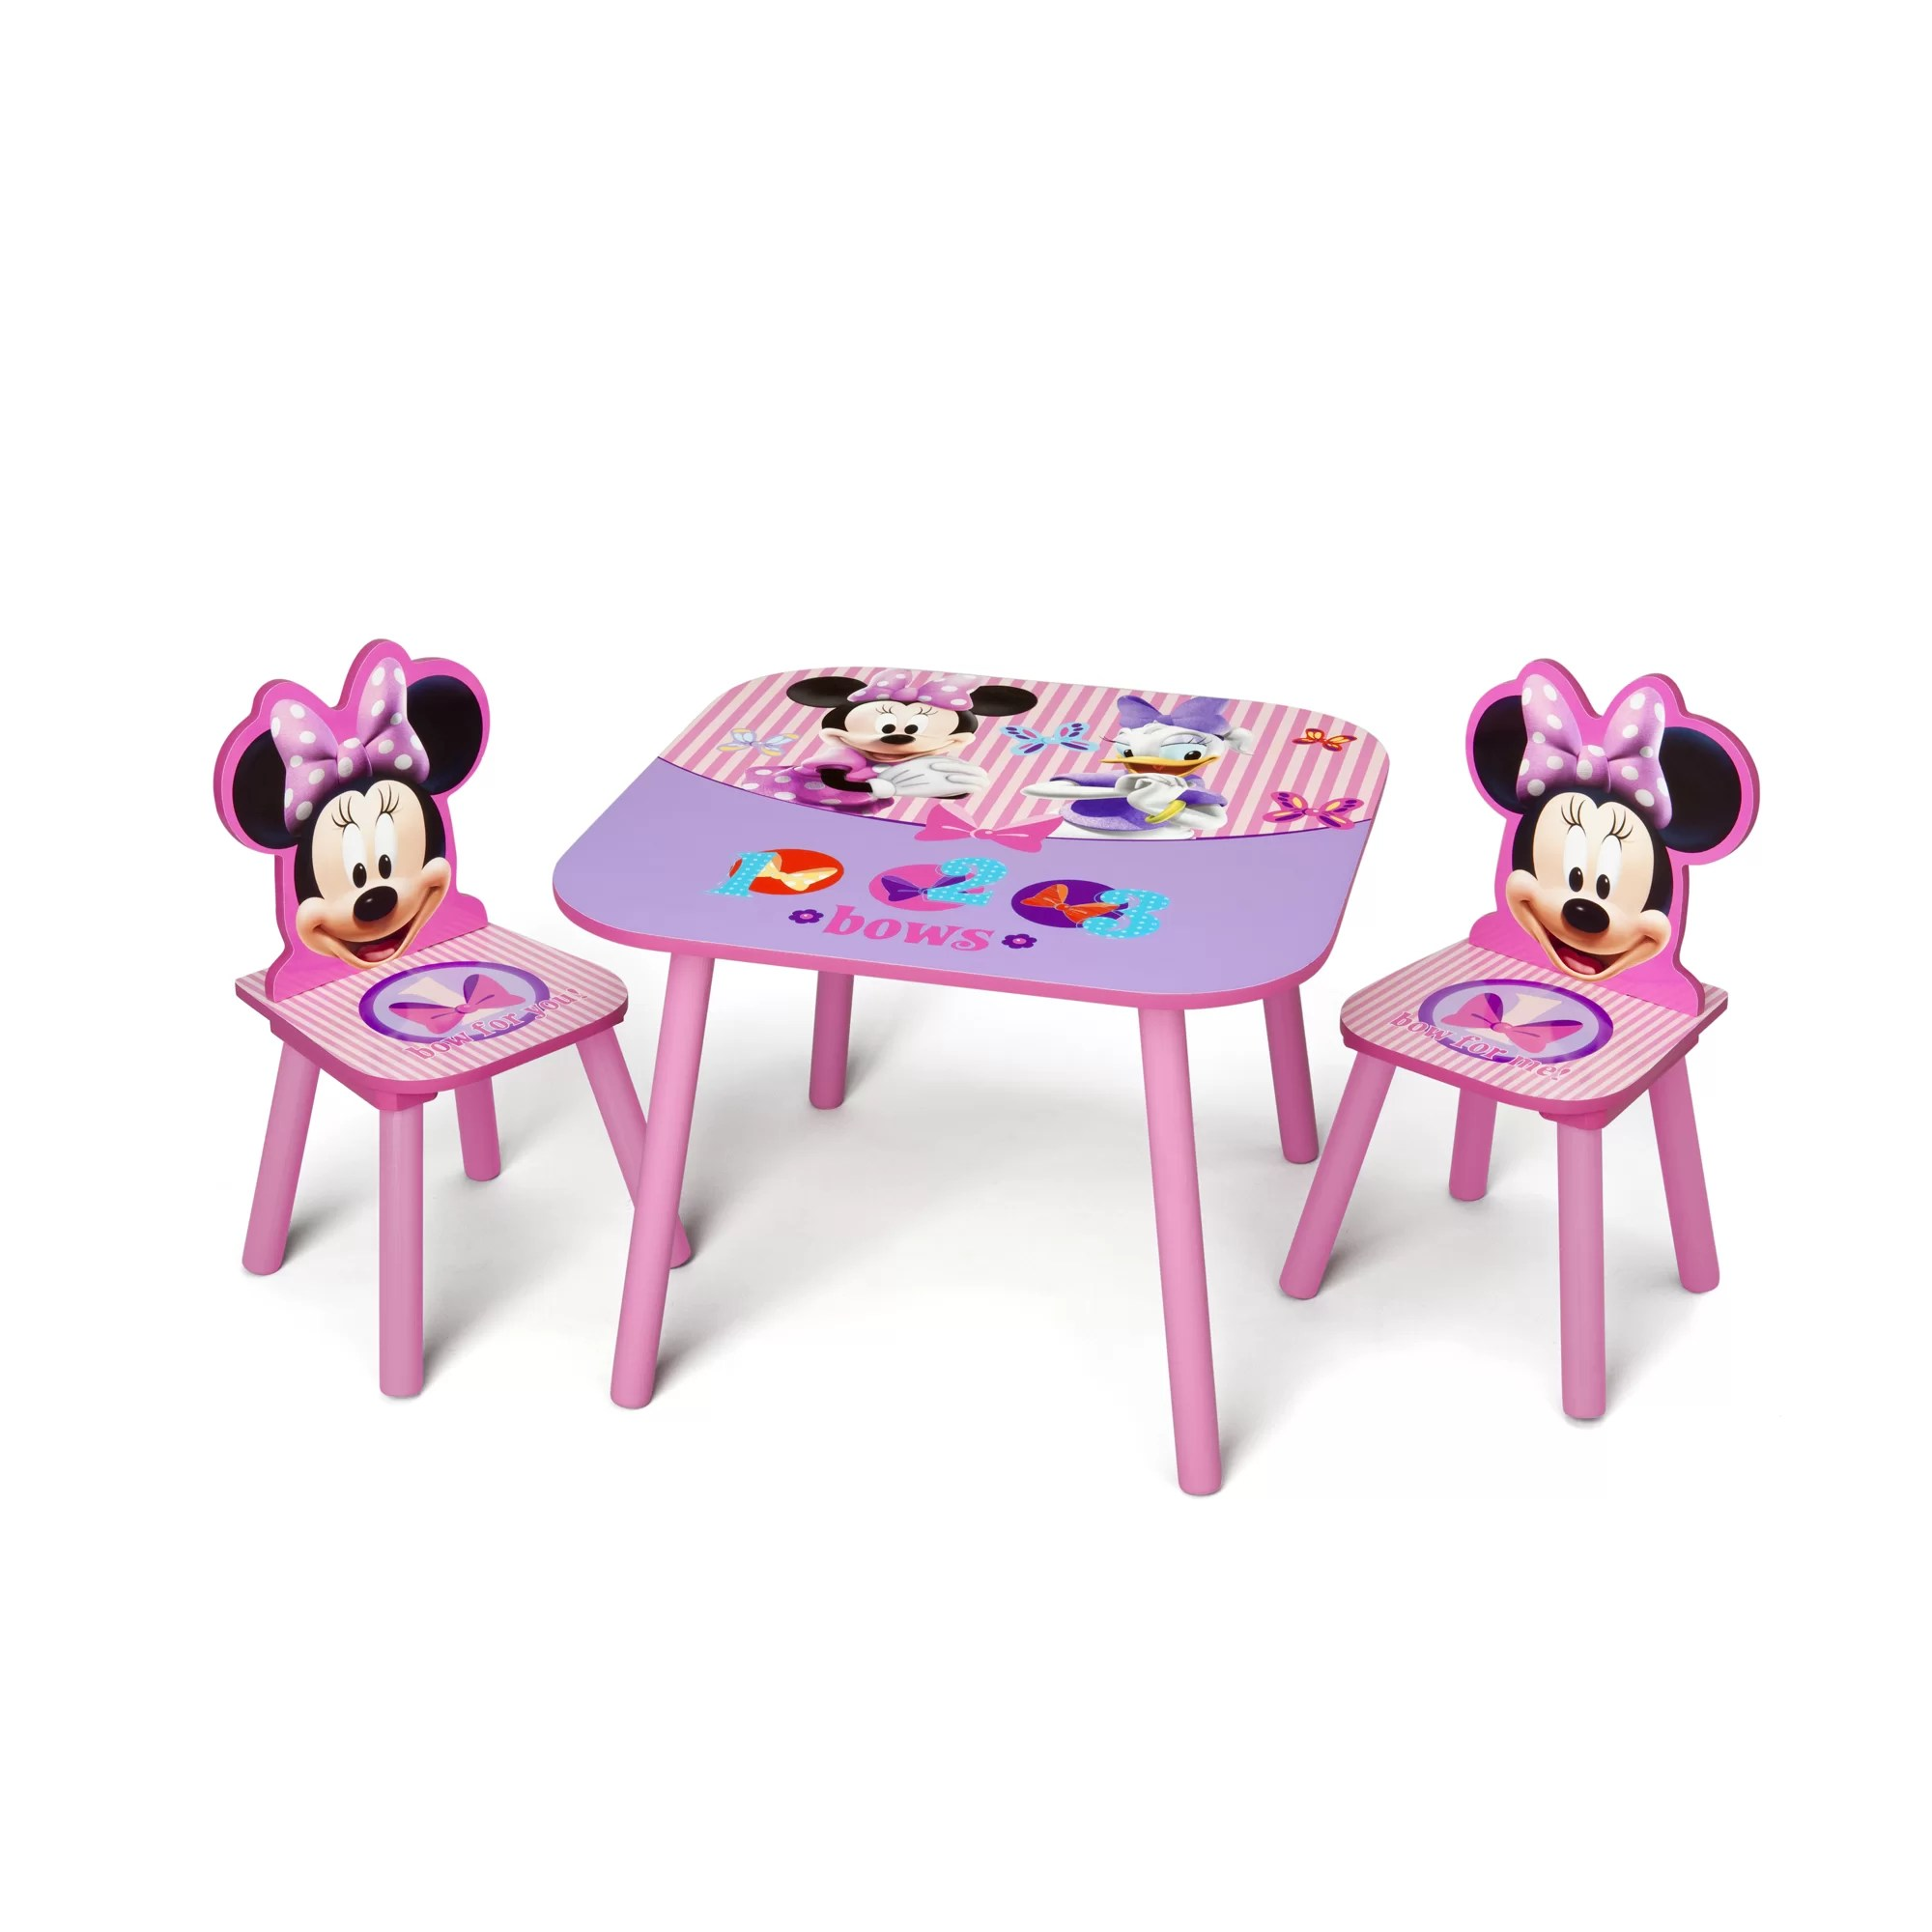 3 piece toddler sofa set ikea usa delta children minnie mouse kids table and chair